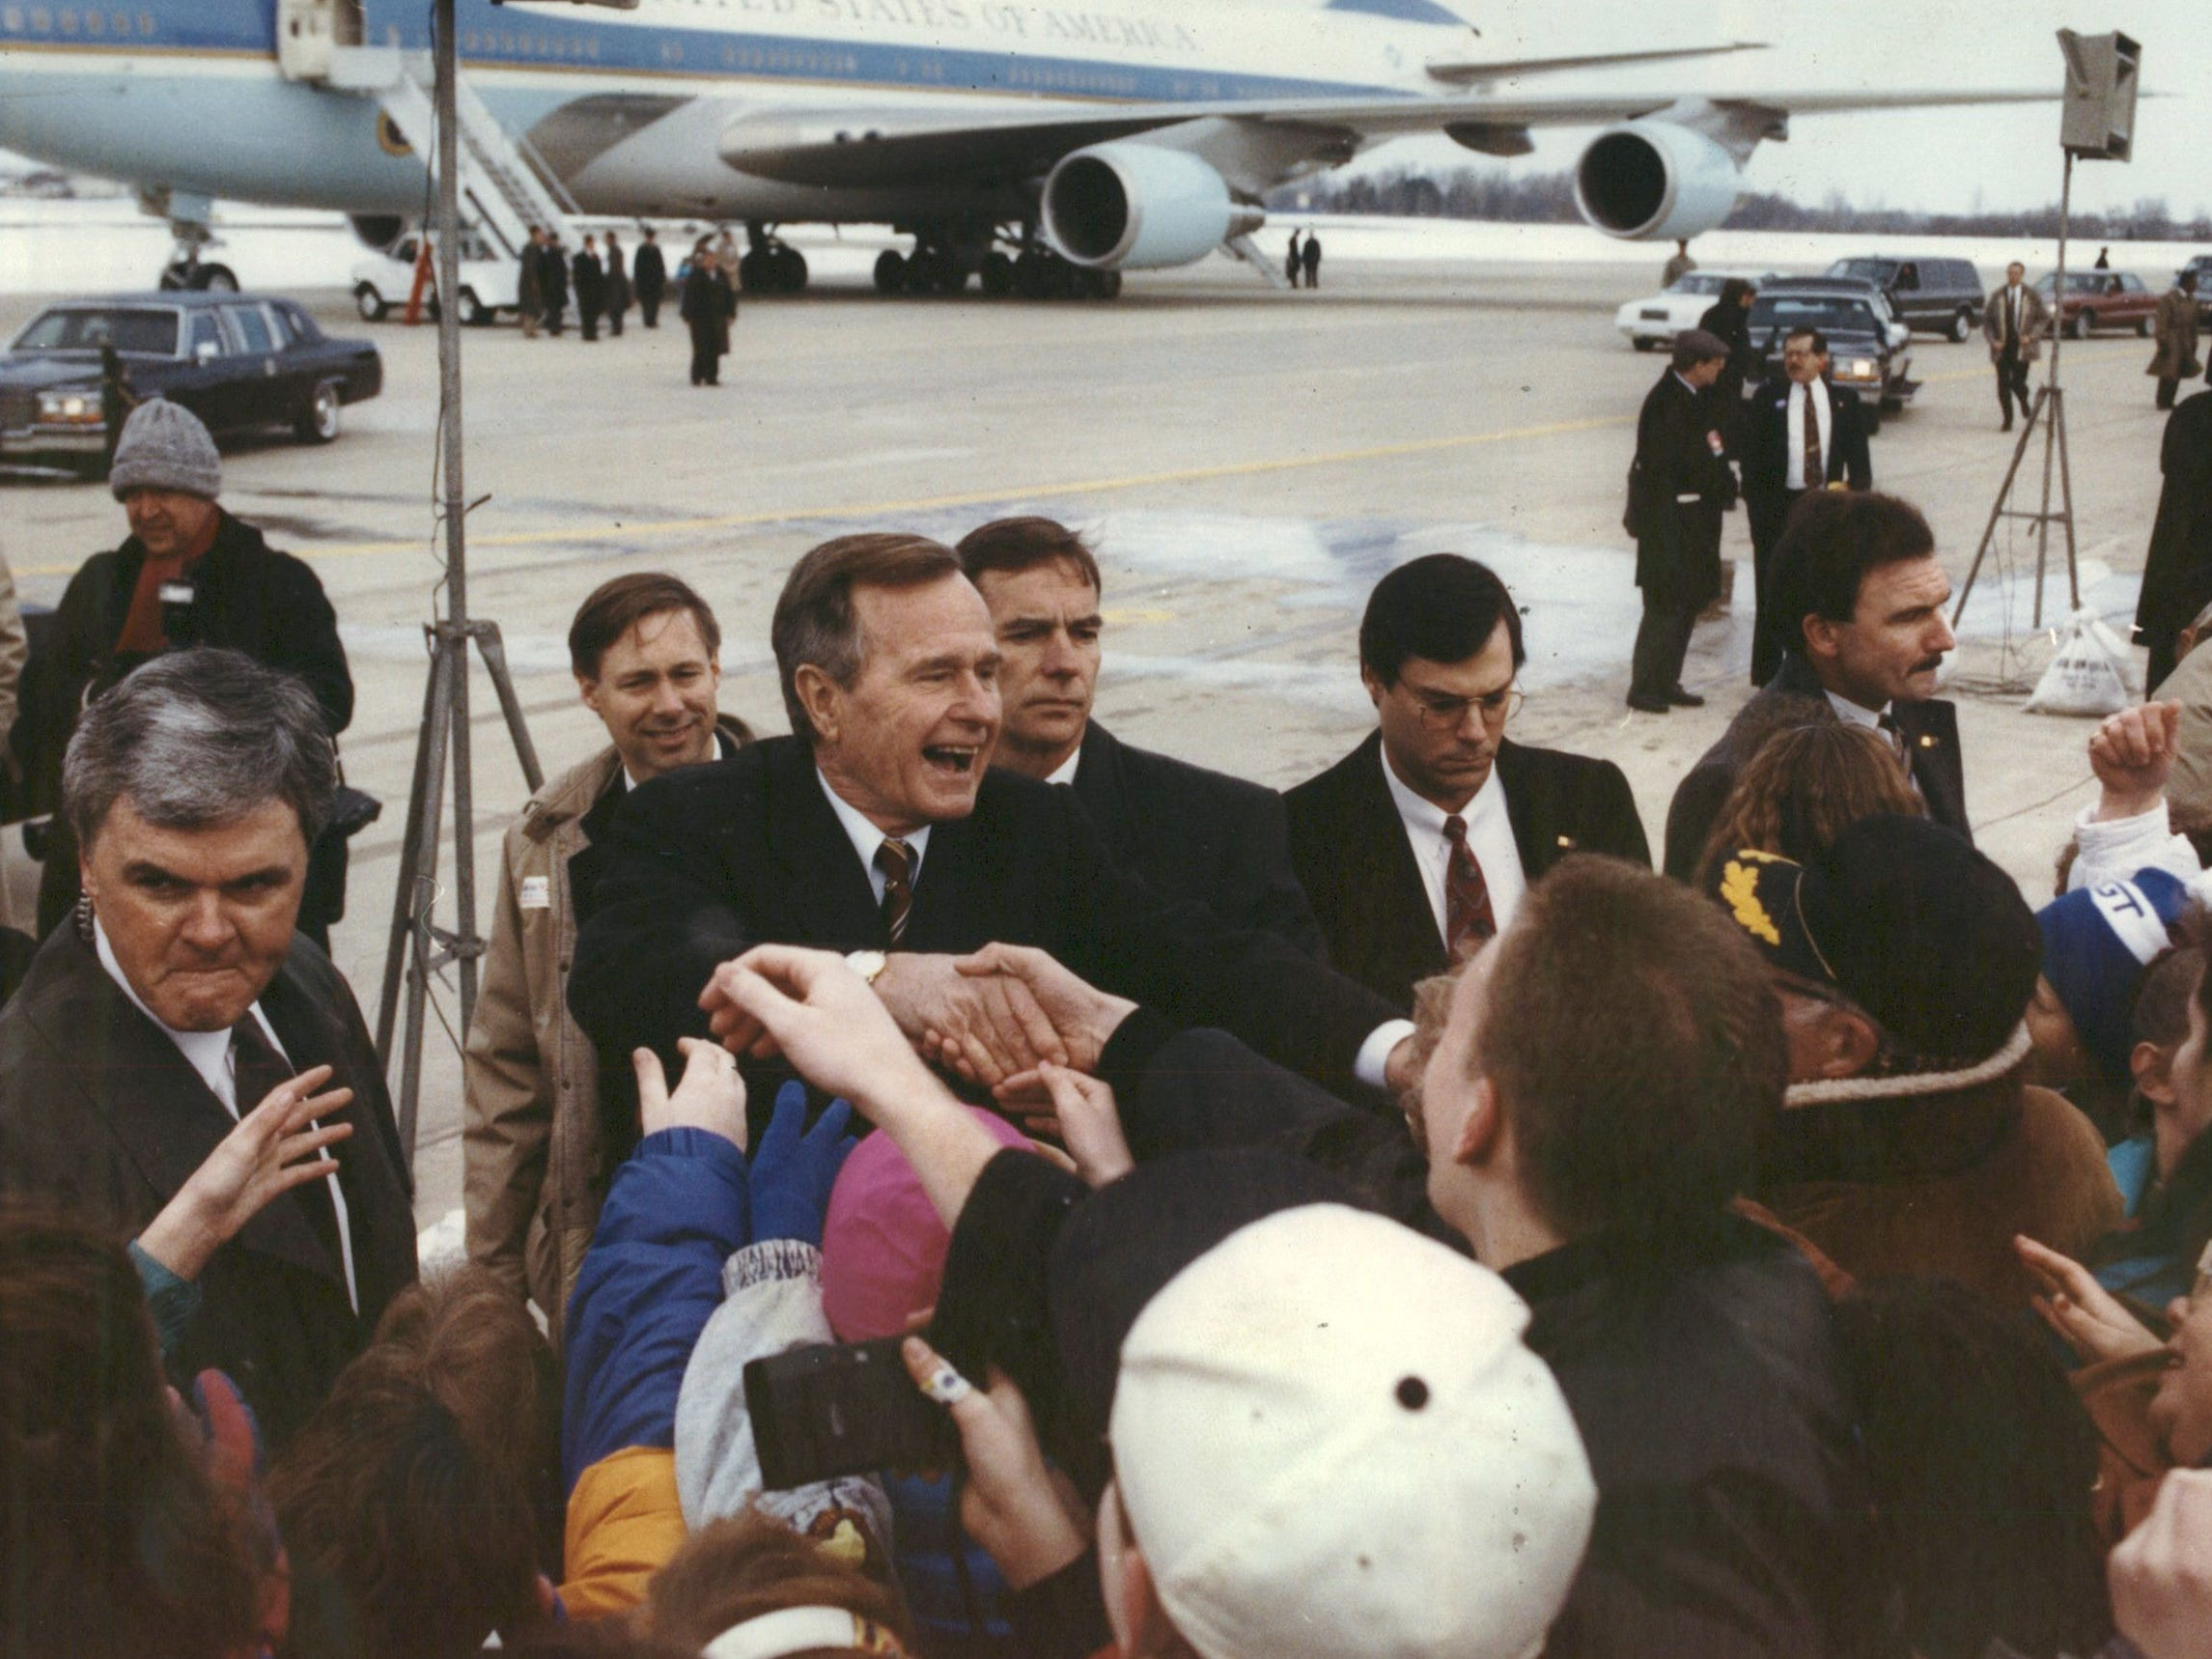 President George Bush shakes hands with supporters on his arrival in Battle Creek in March 1992.